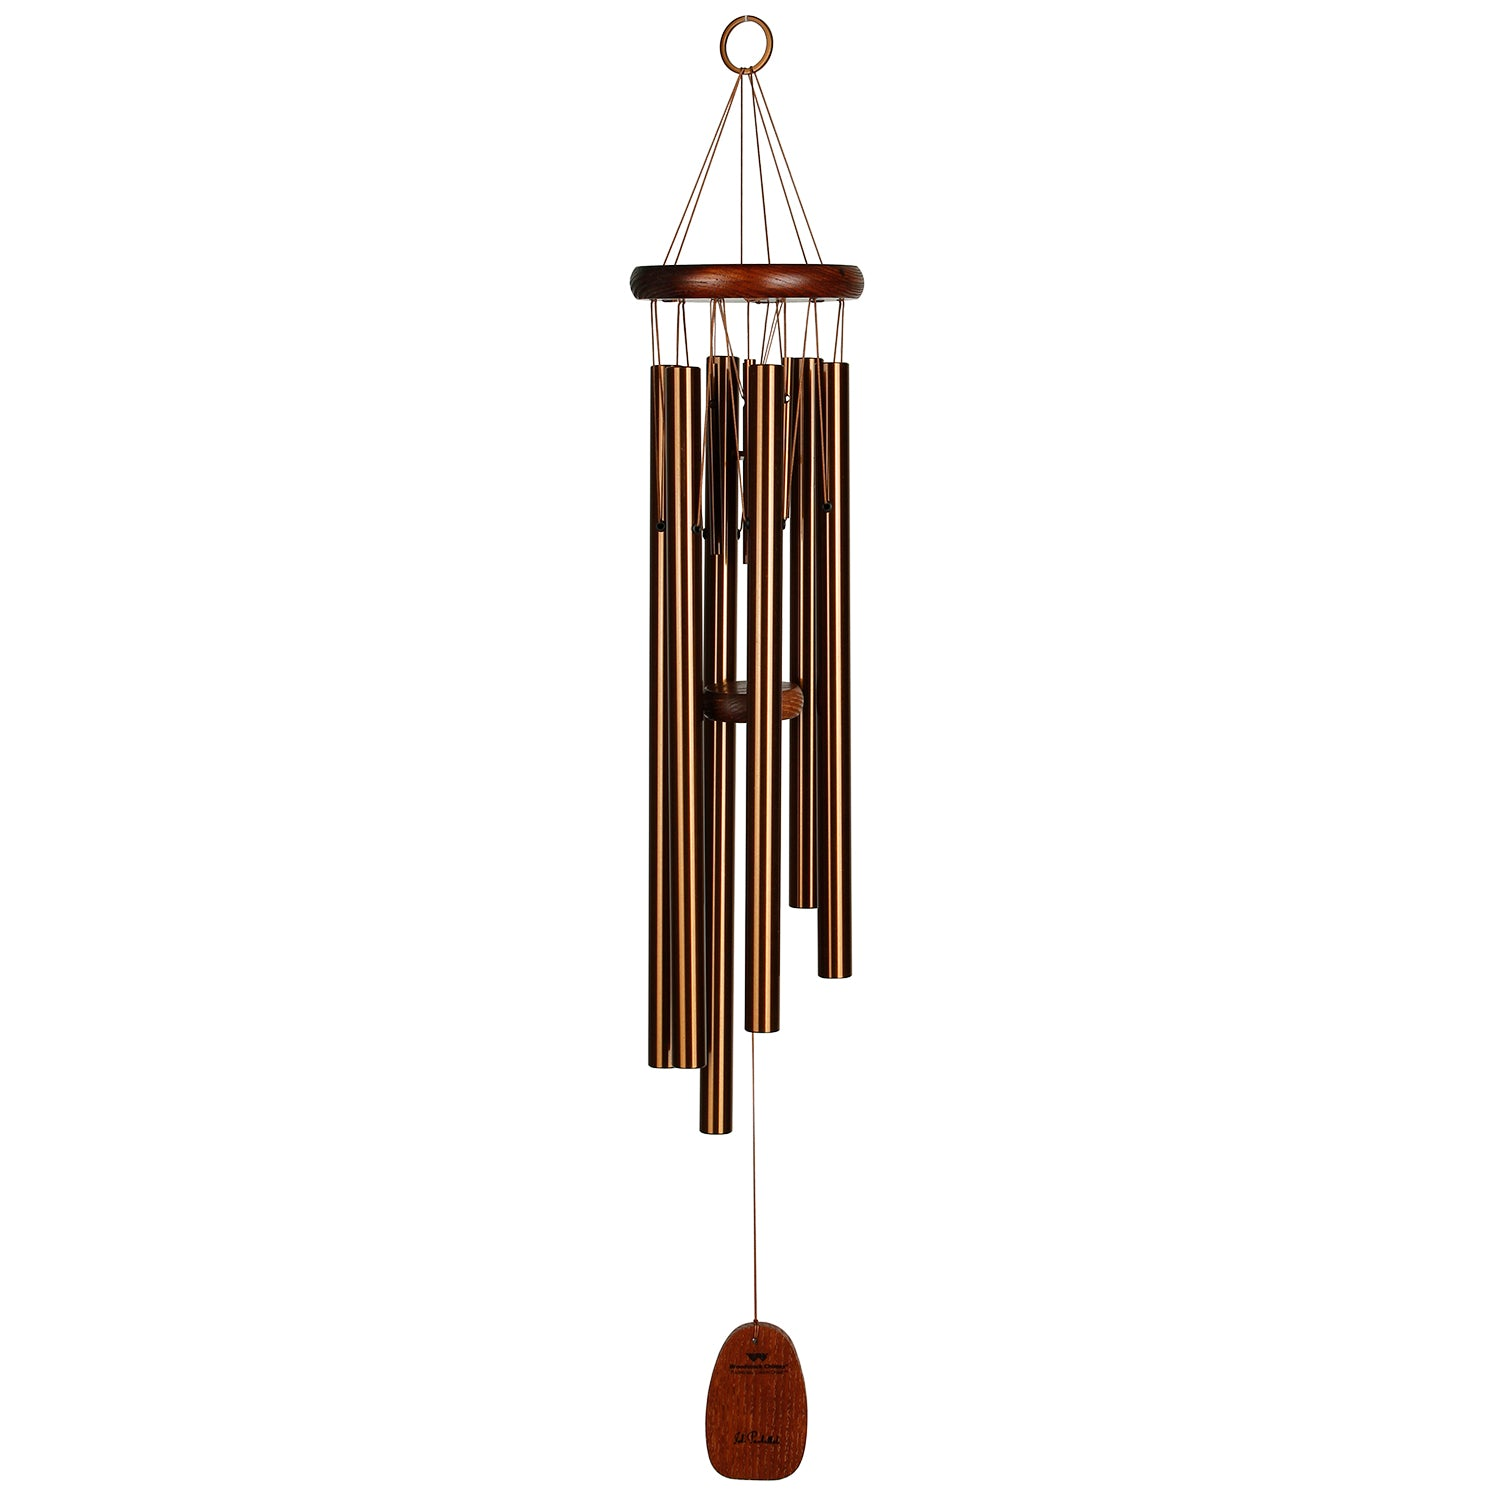 Pachelbel Canon Chime - Bronze full product image